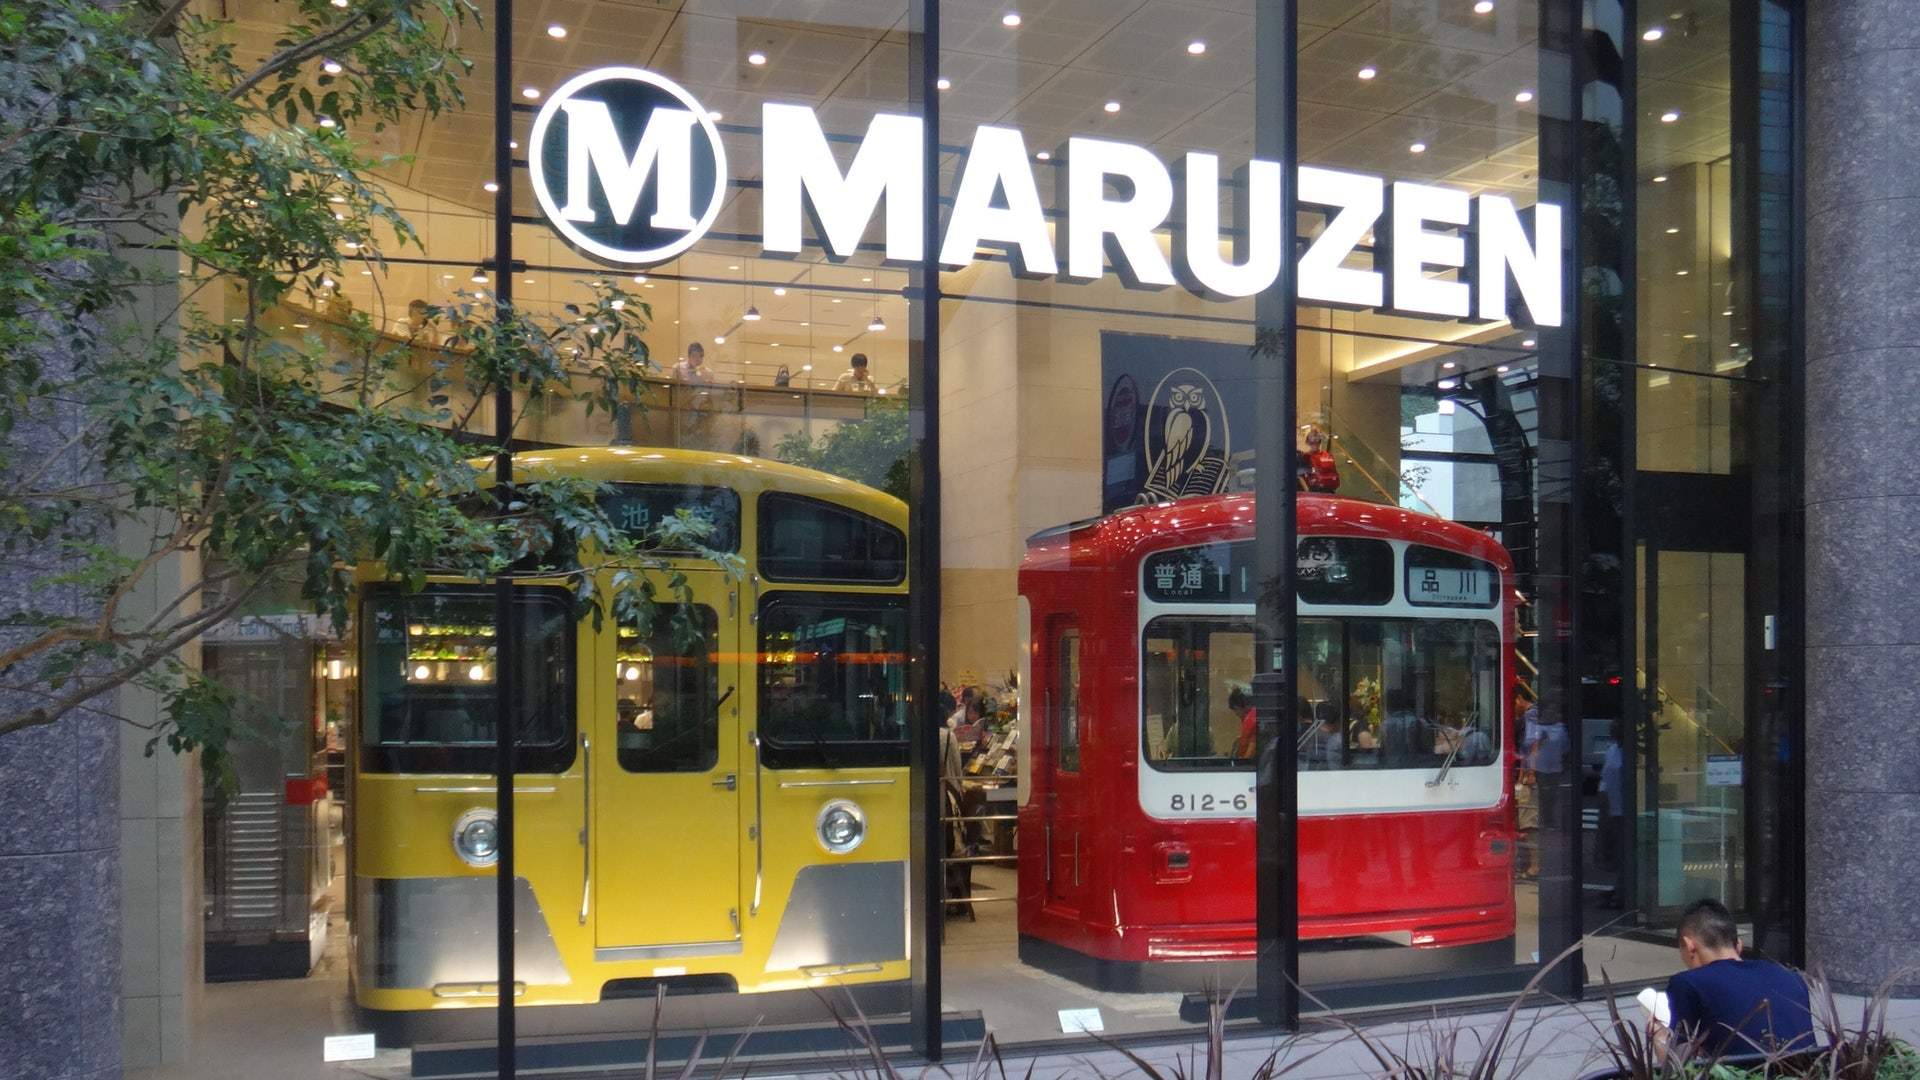 two tram carriages in the window display of Maruzen Ikebukuro